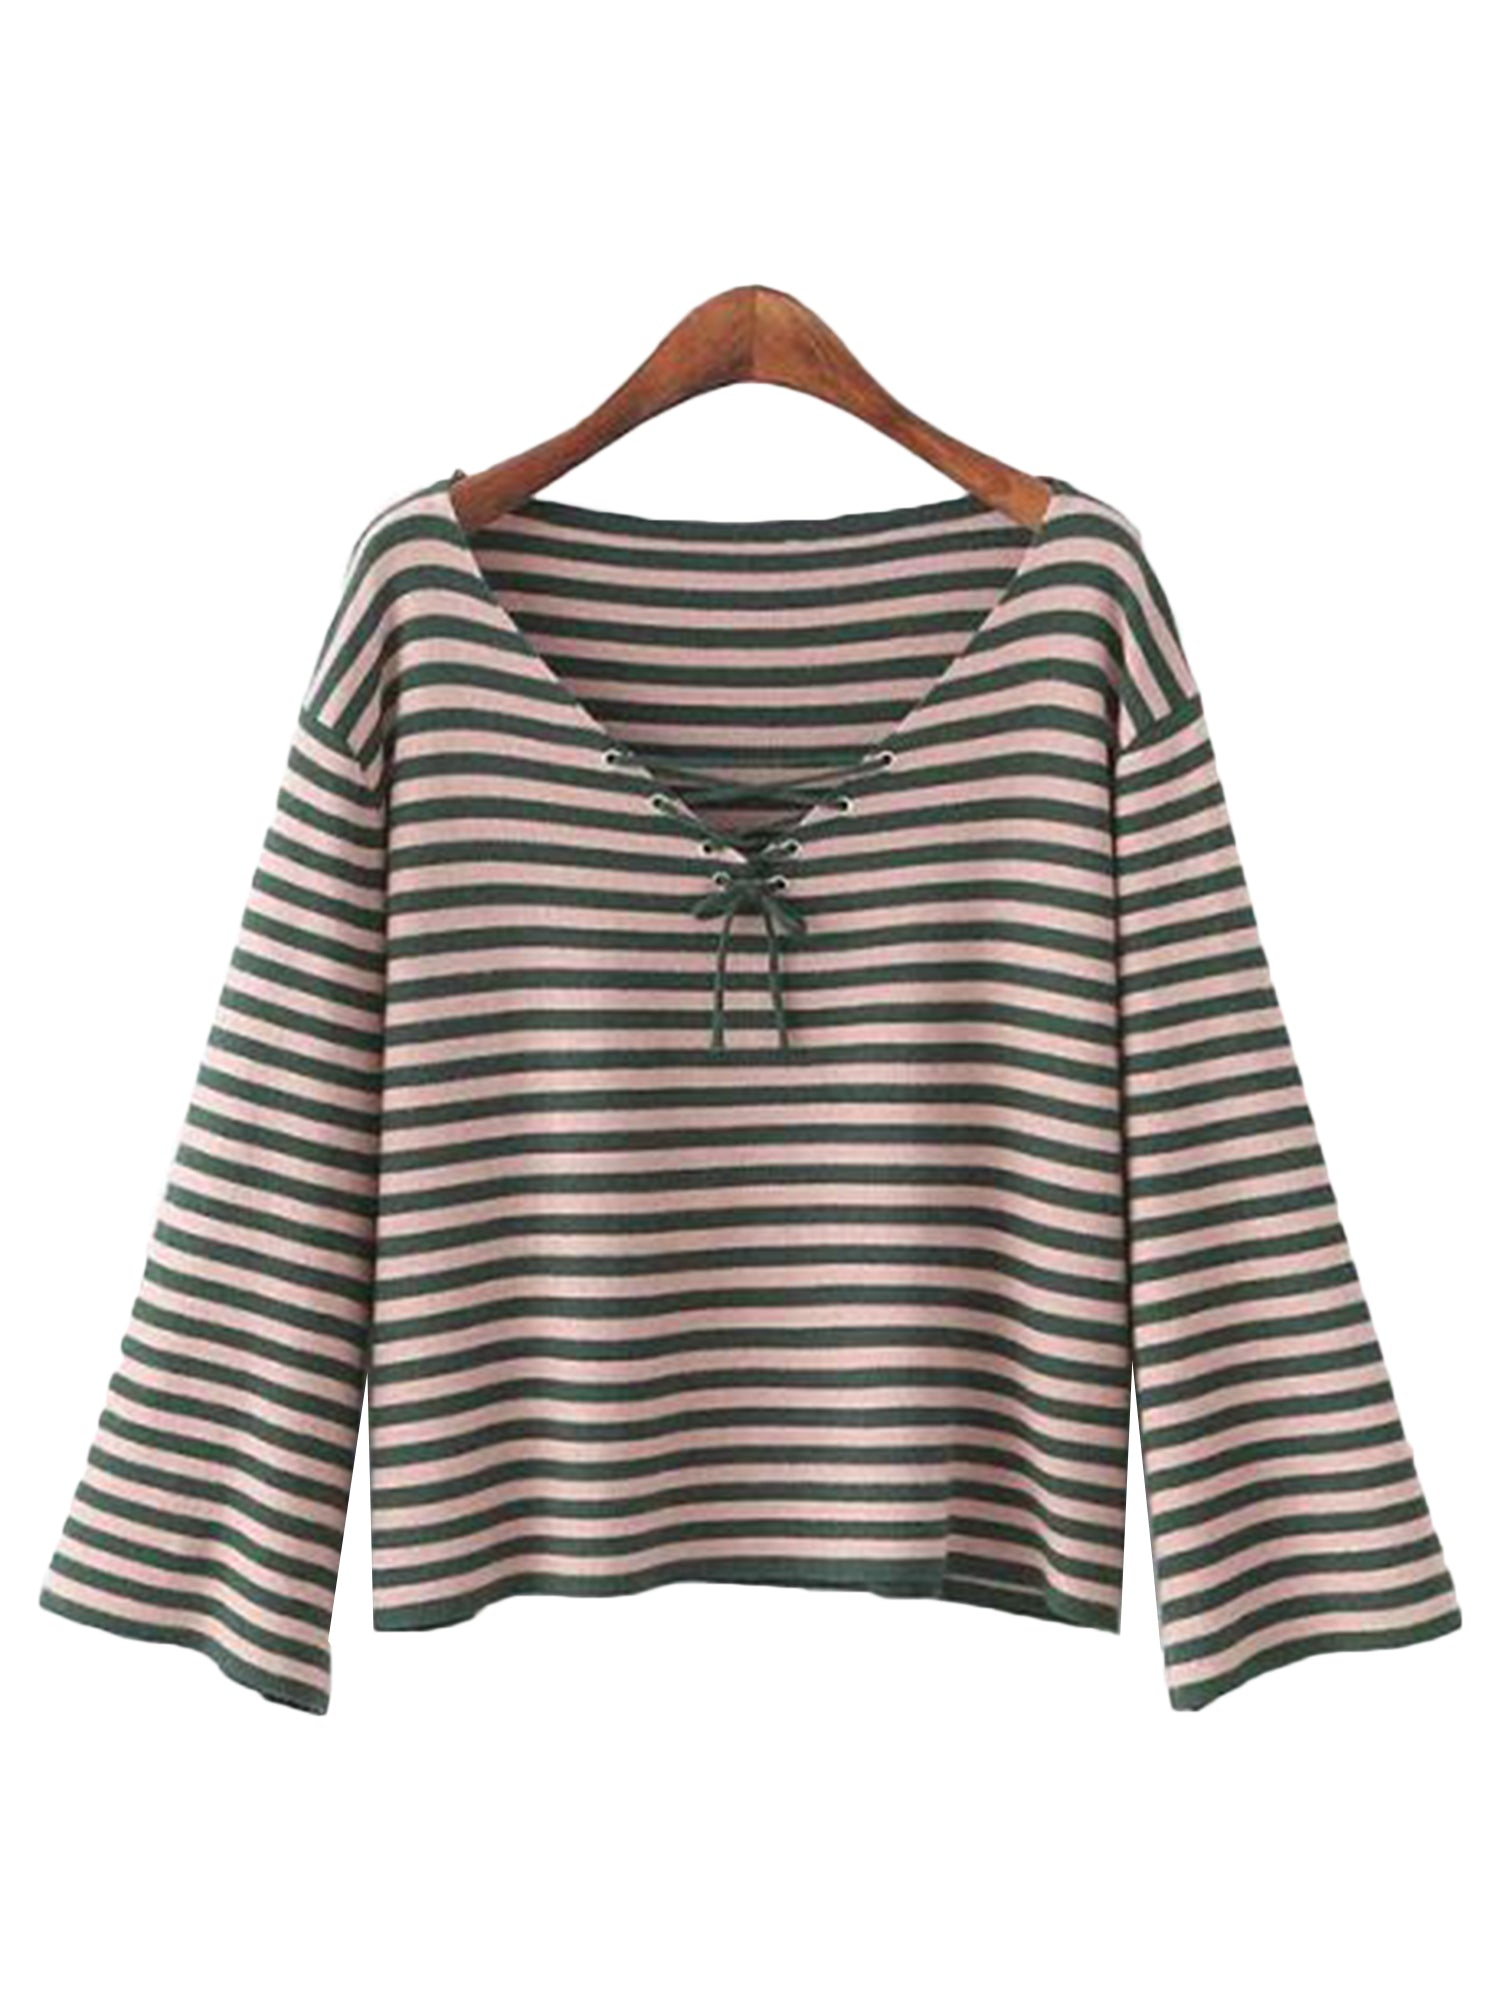 'Teressa' Striped Lace-up Sweater (2 Colors)